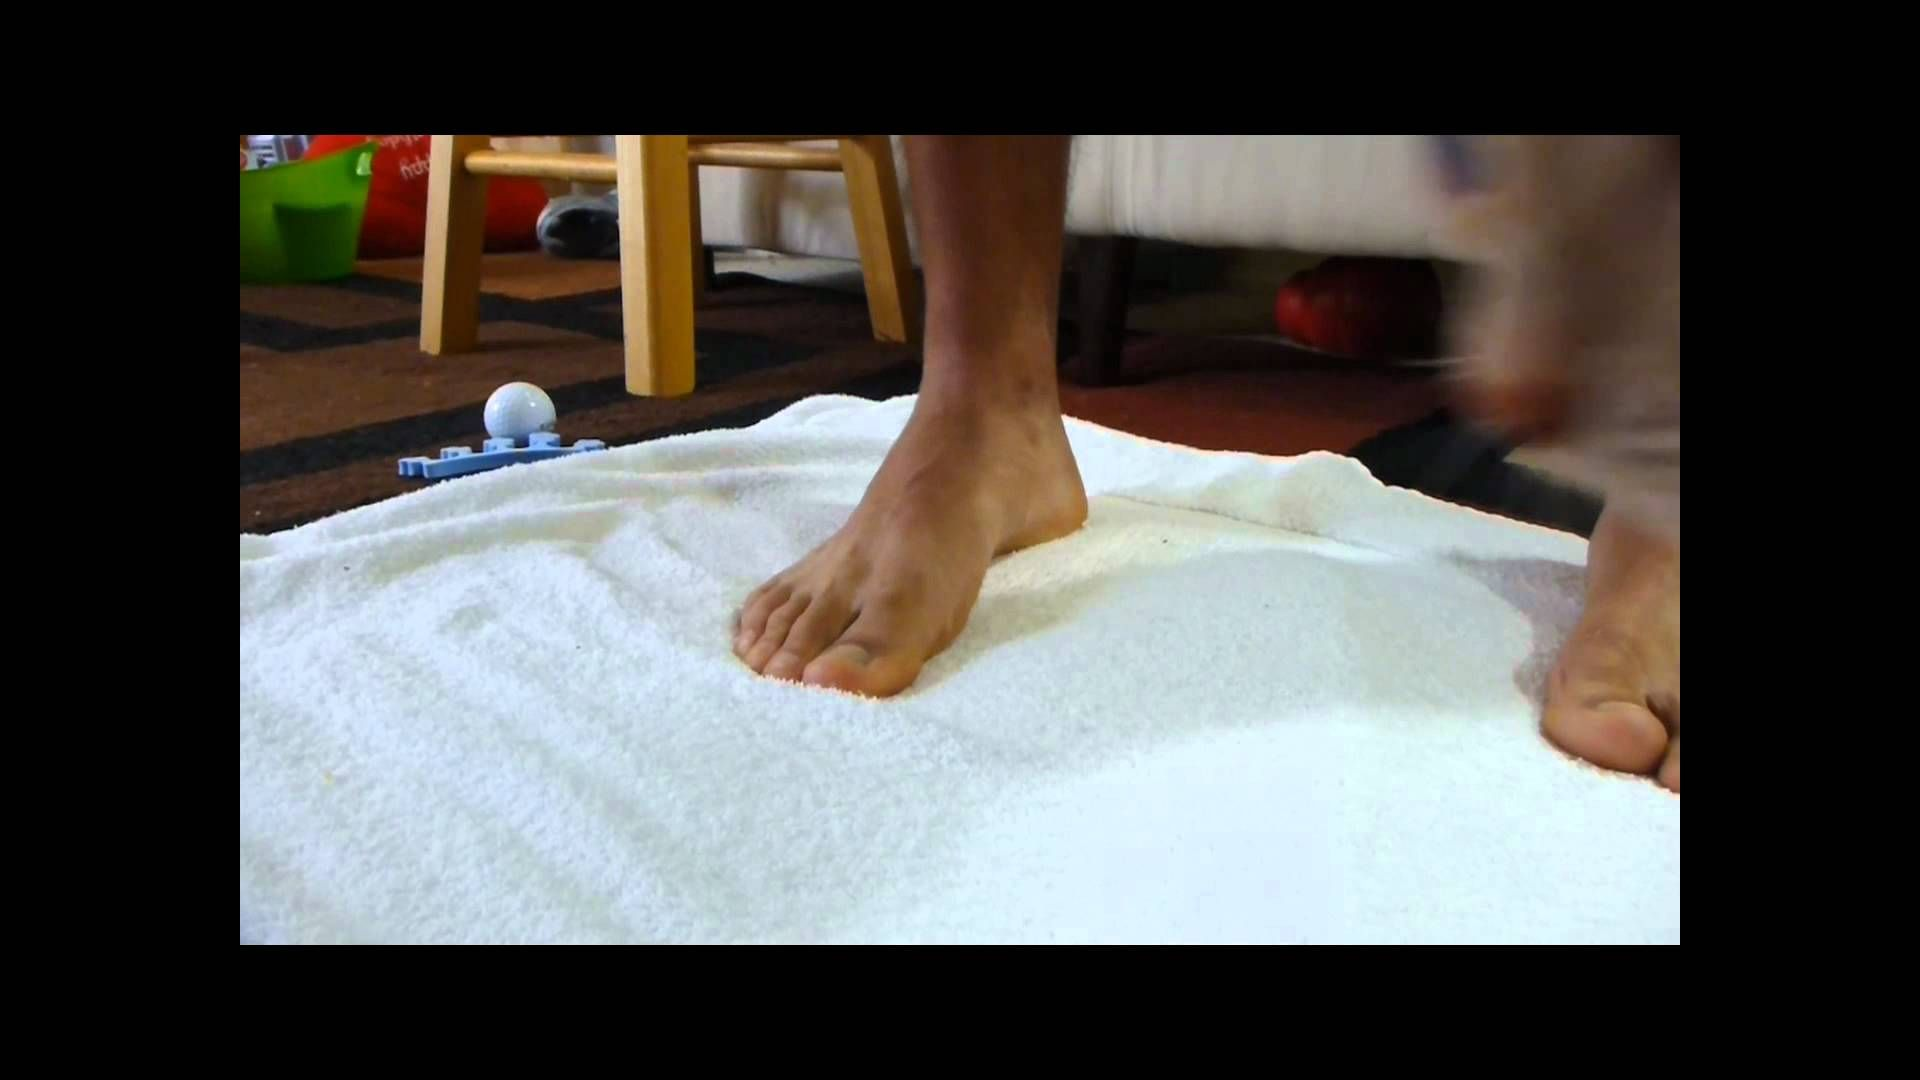 Bunion Treatment - Exercises to Help Avoid Bunion Surgery 2/3